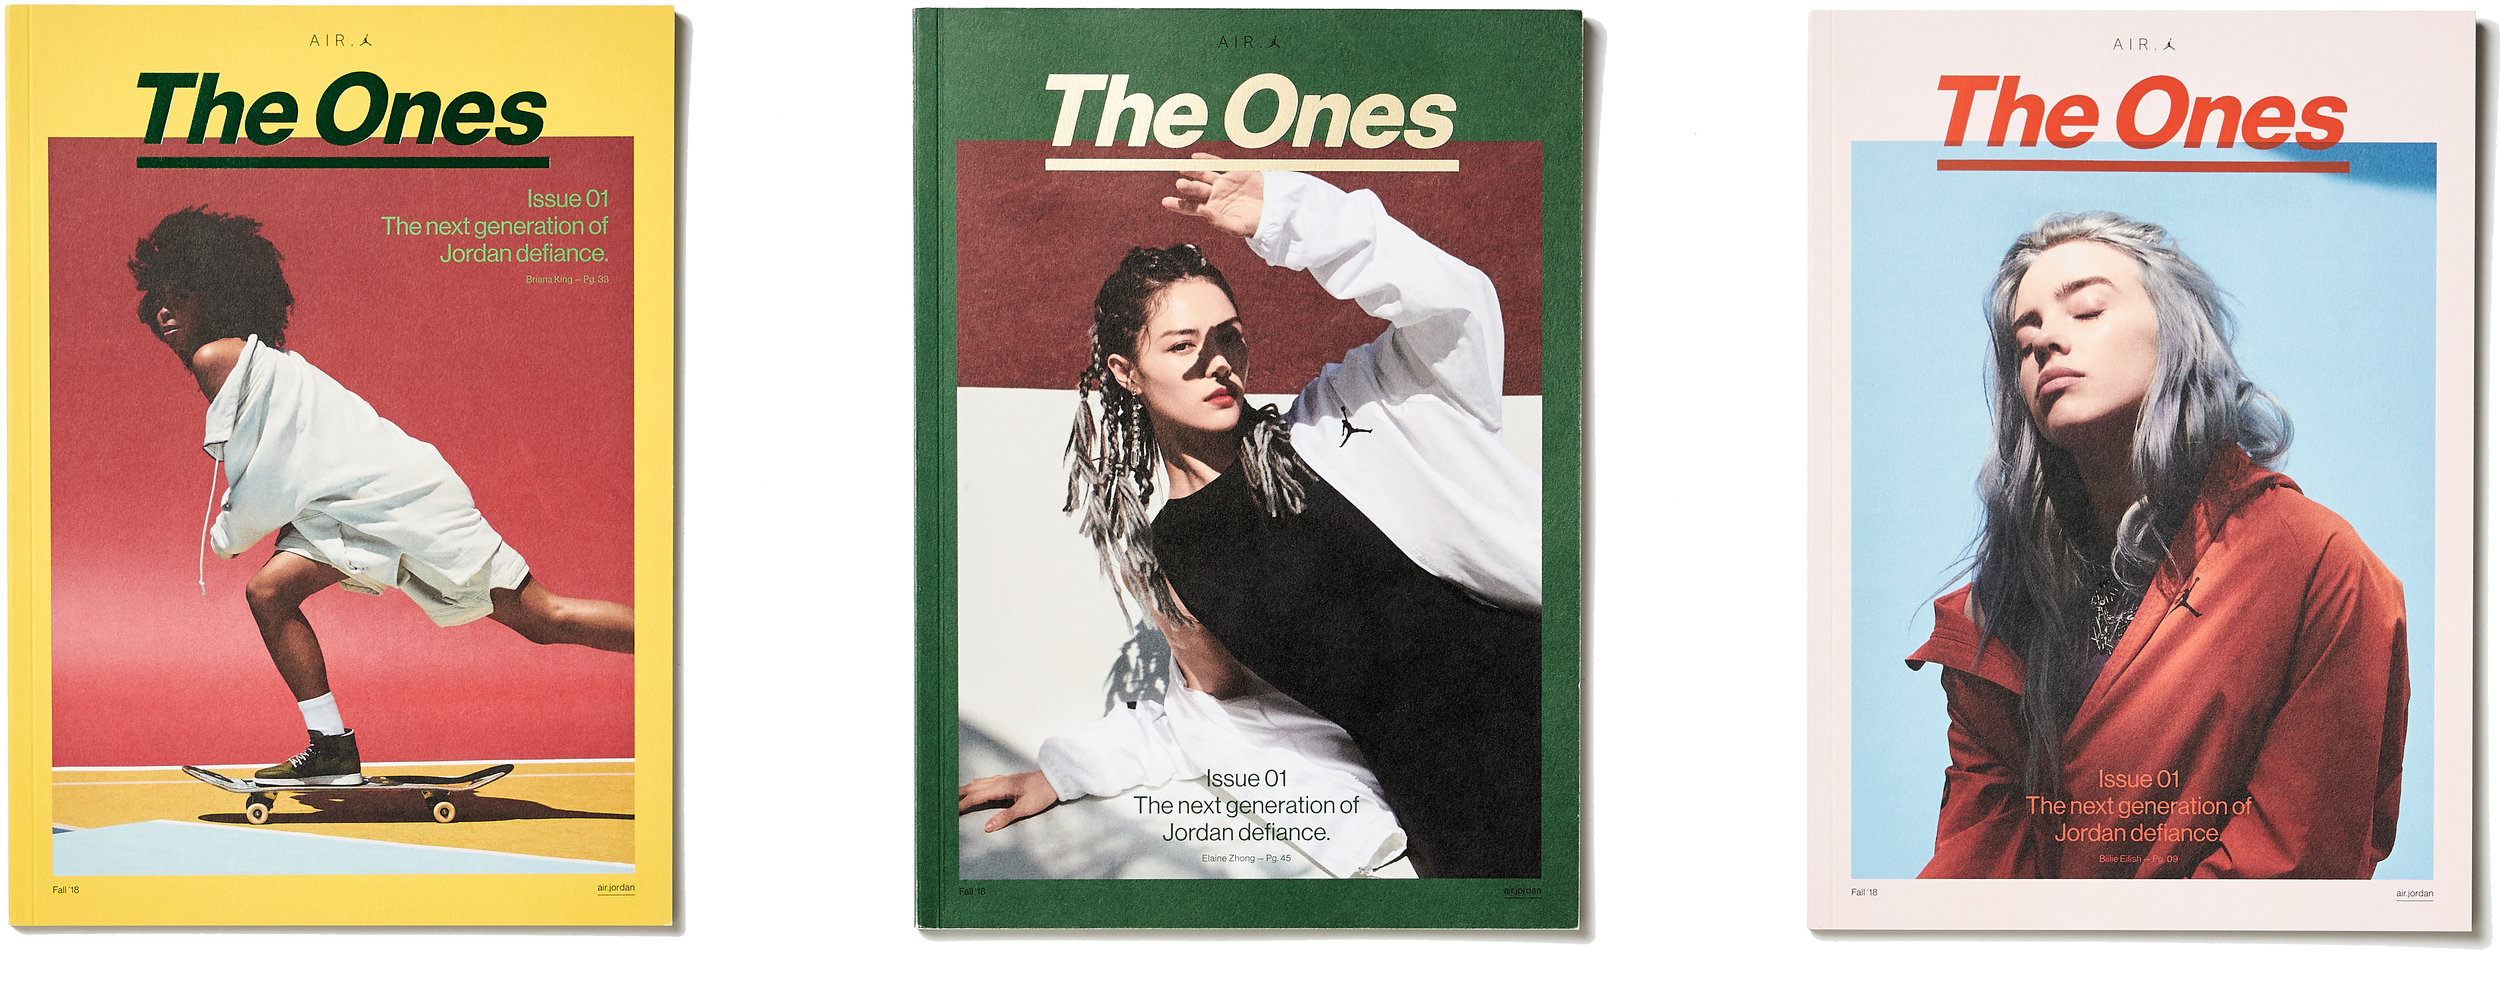 The Ones Zine Covers 4.jpg